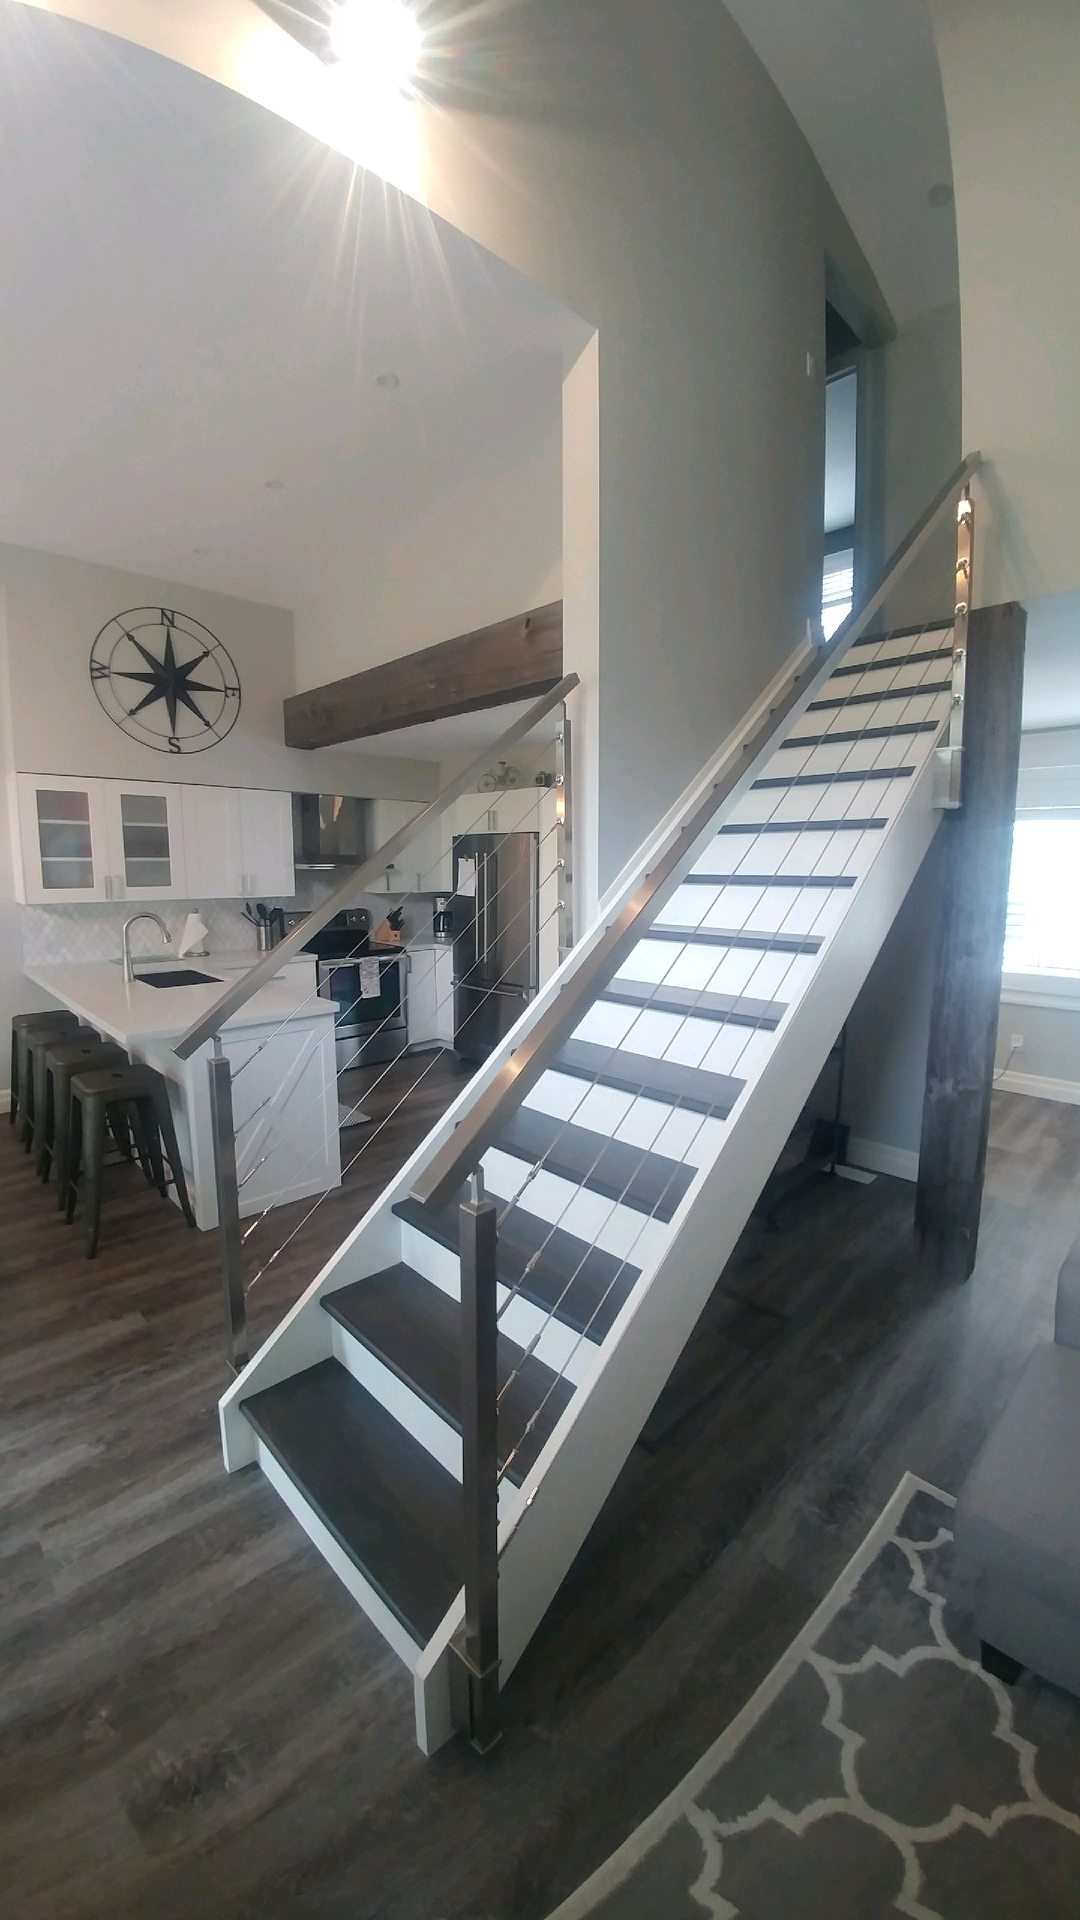 Stainless steel square posts/railing with cable railing (does not pass code).  Job location: Collingwood, ON.